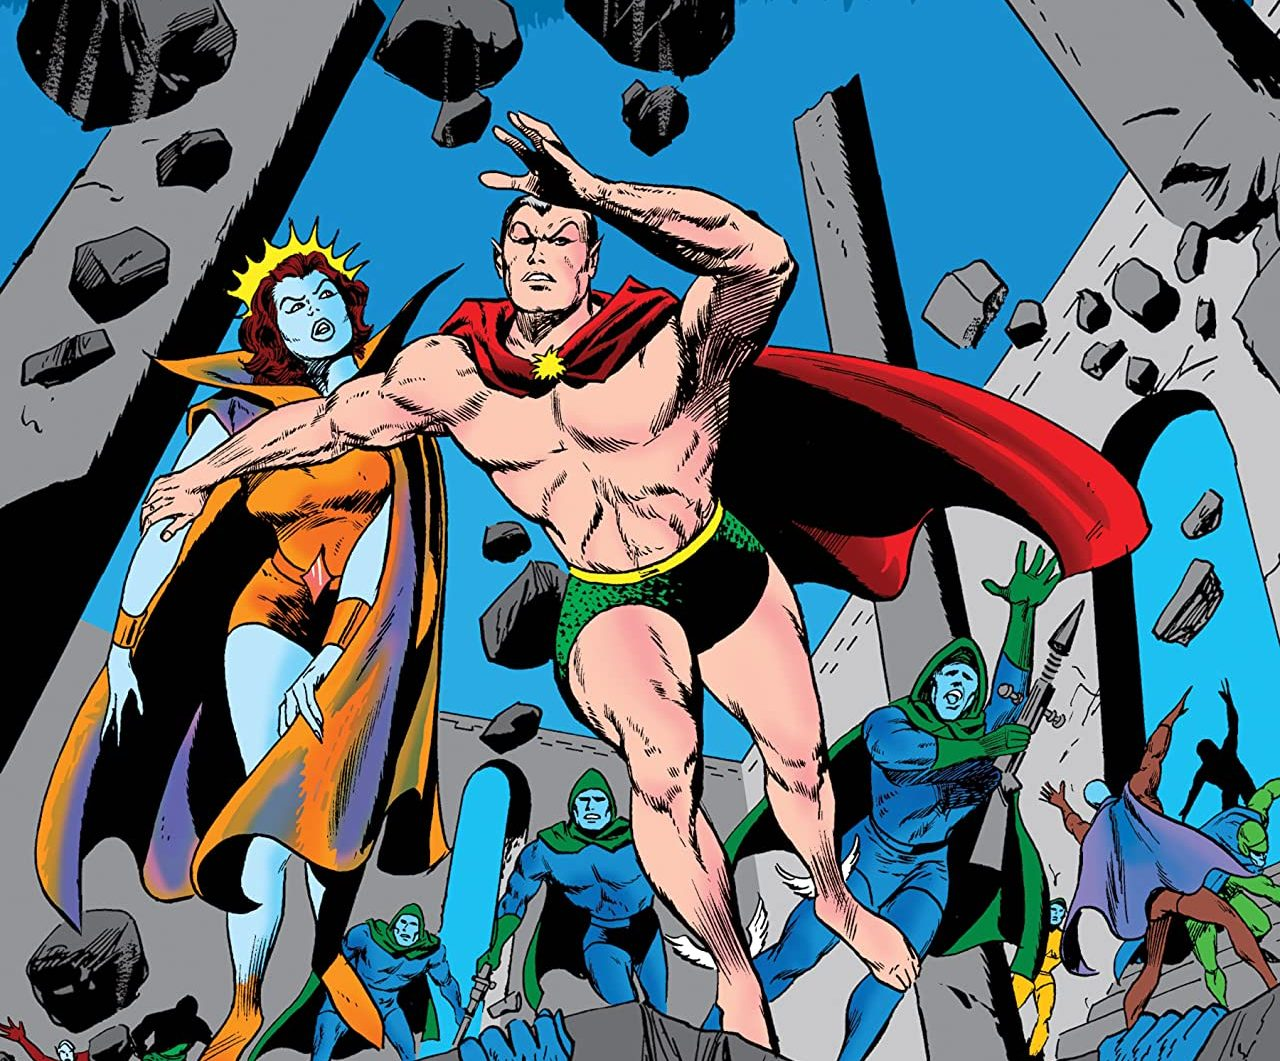 'Namor, the Sub-Mariner Epic Collection: Enter the Sub-Mariner' review: Silver age comics, bronze medal quality